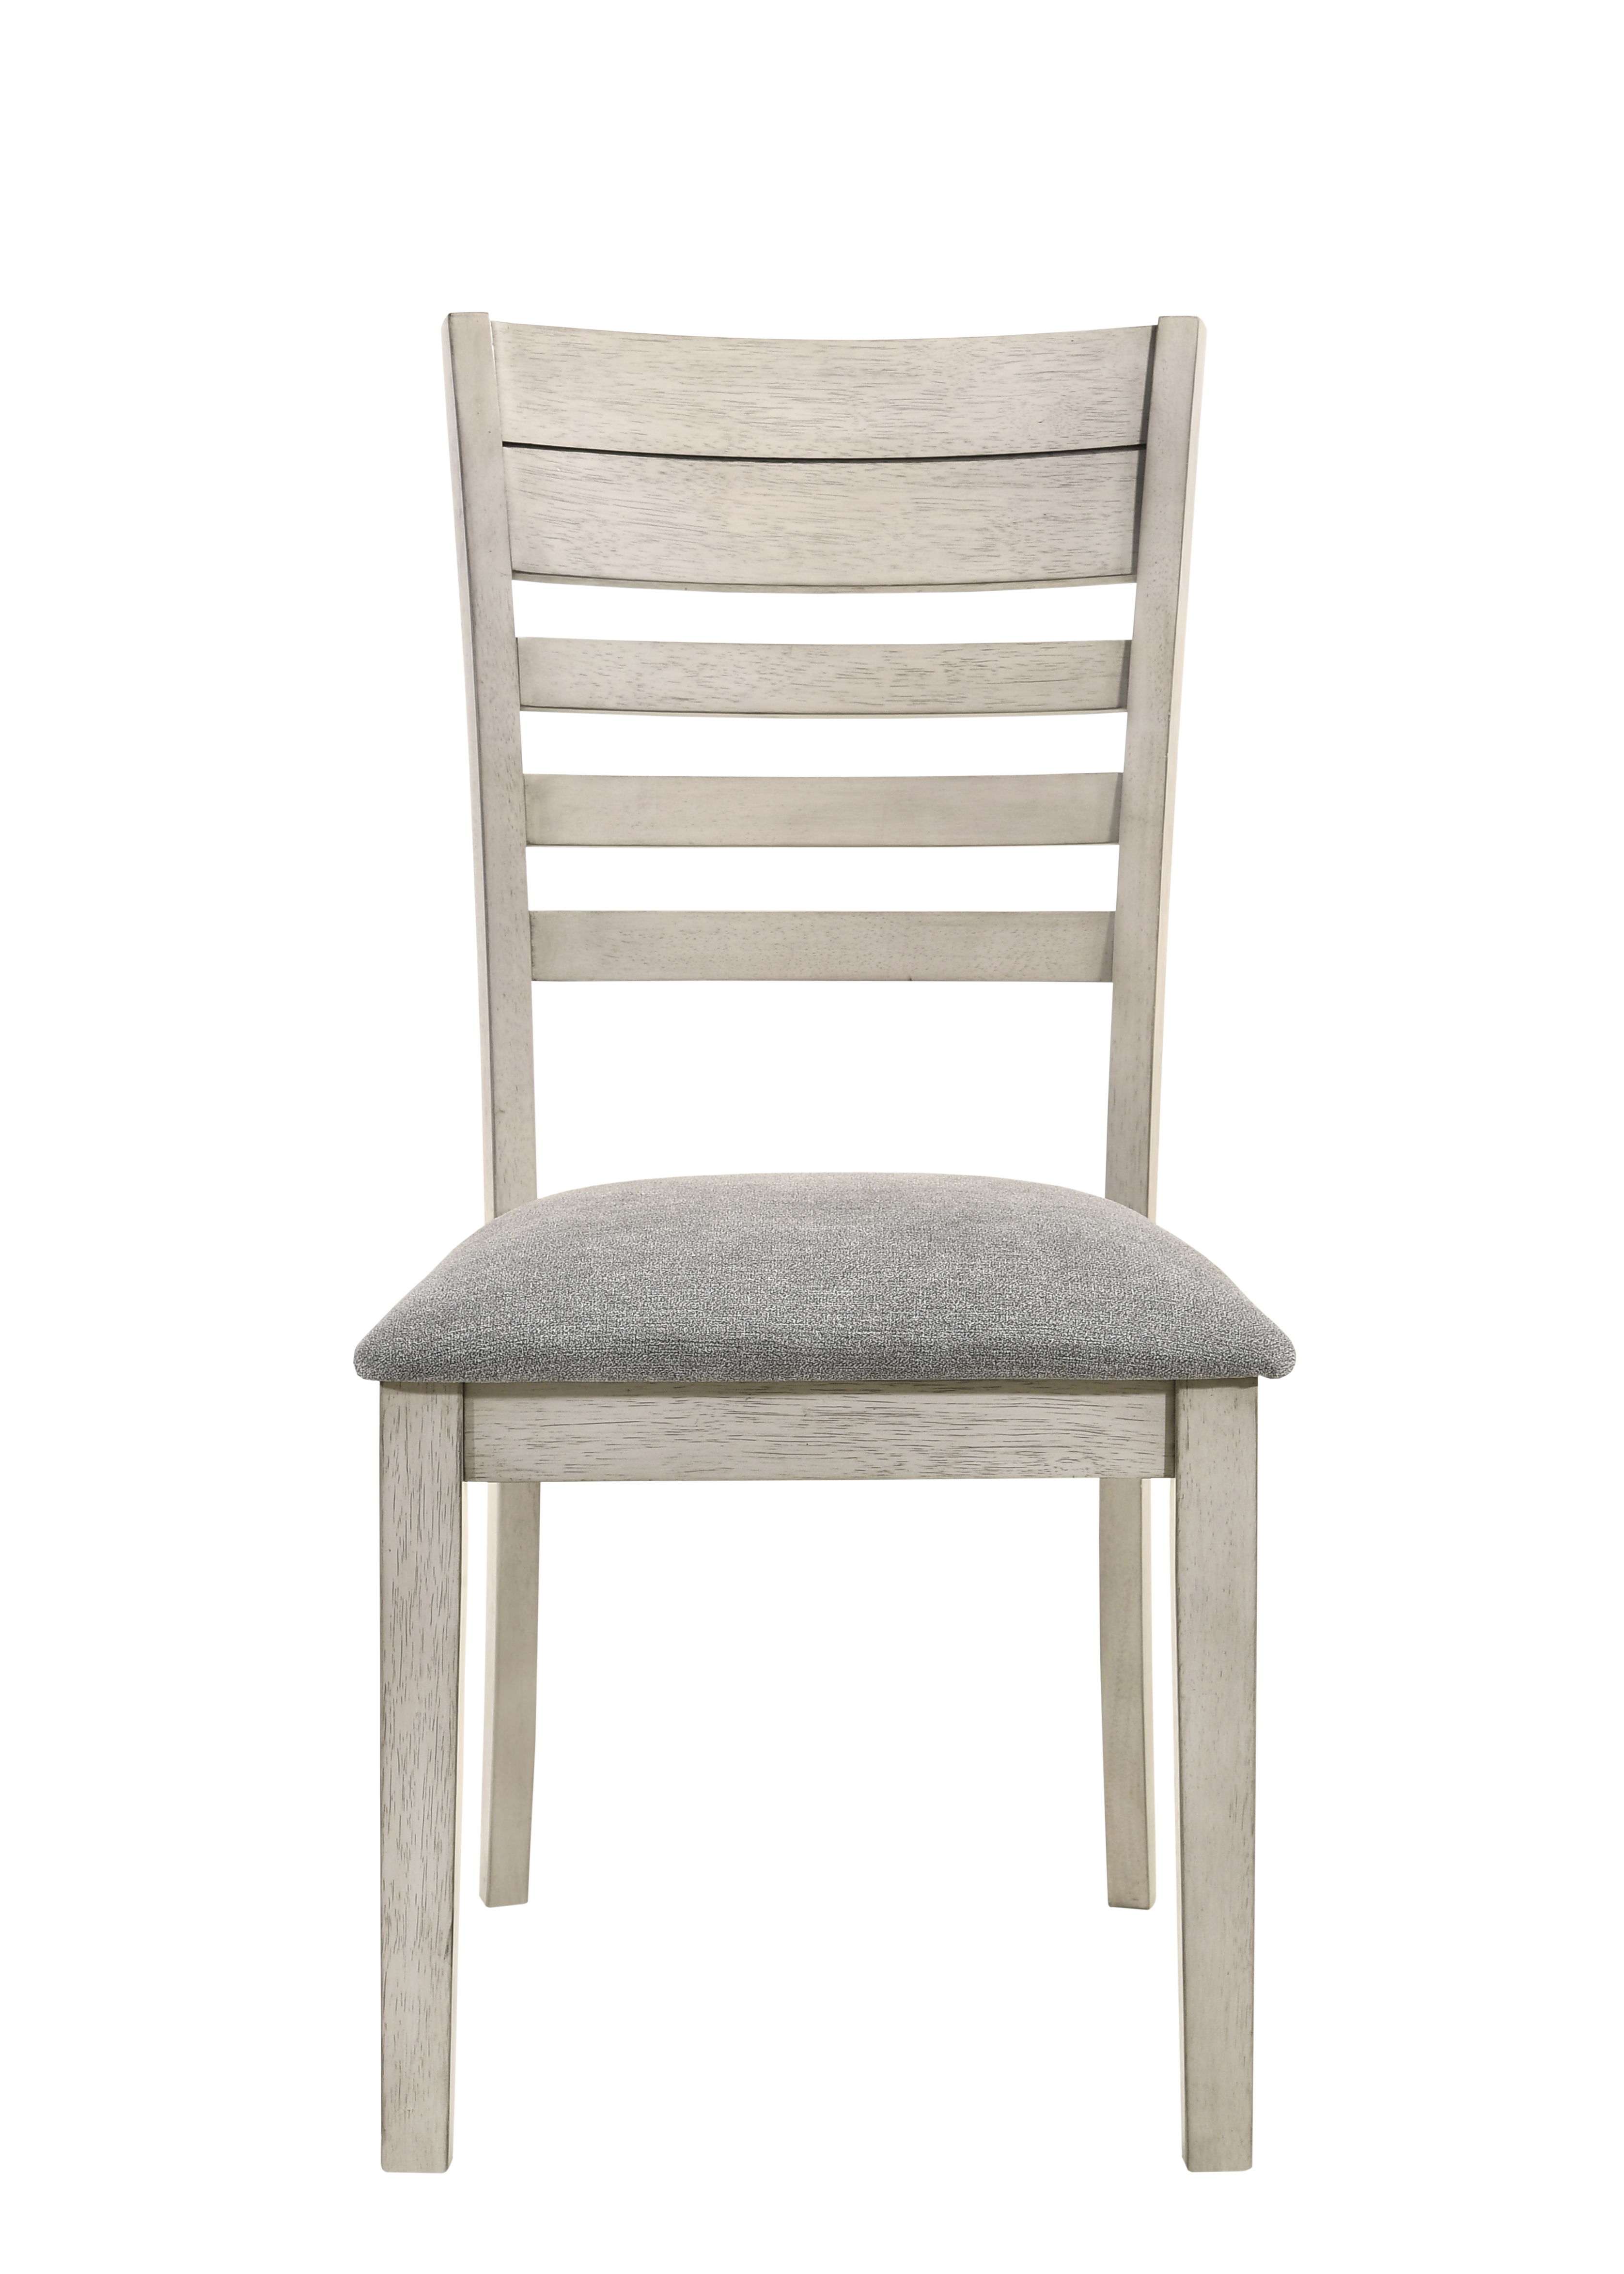 White Sands Side Chair by Crown Mark at Catalog Outlet